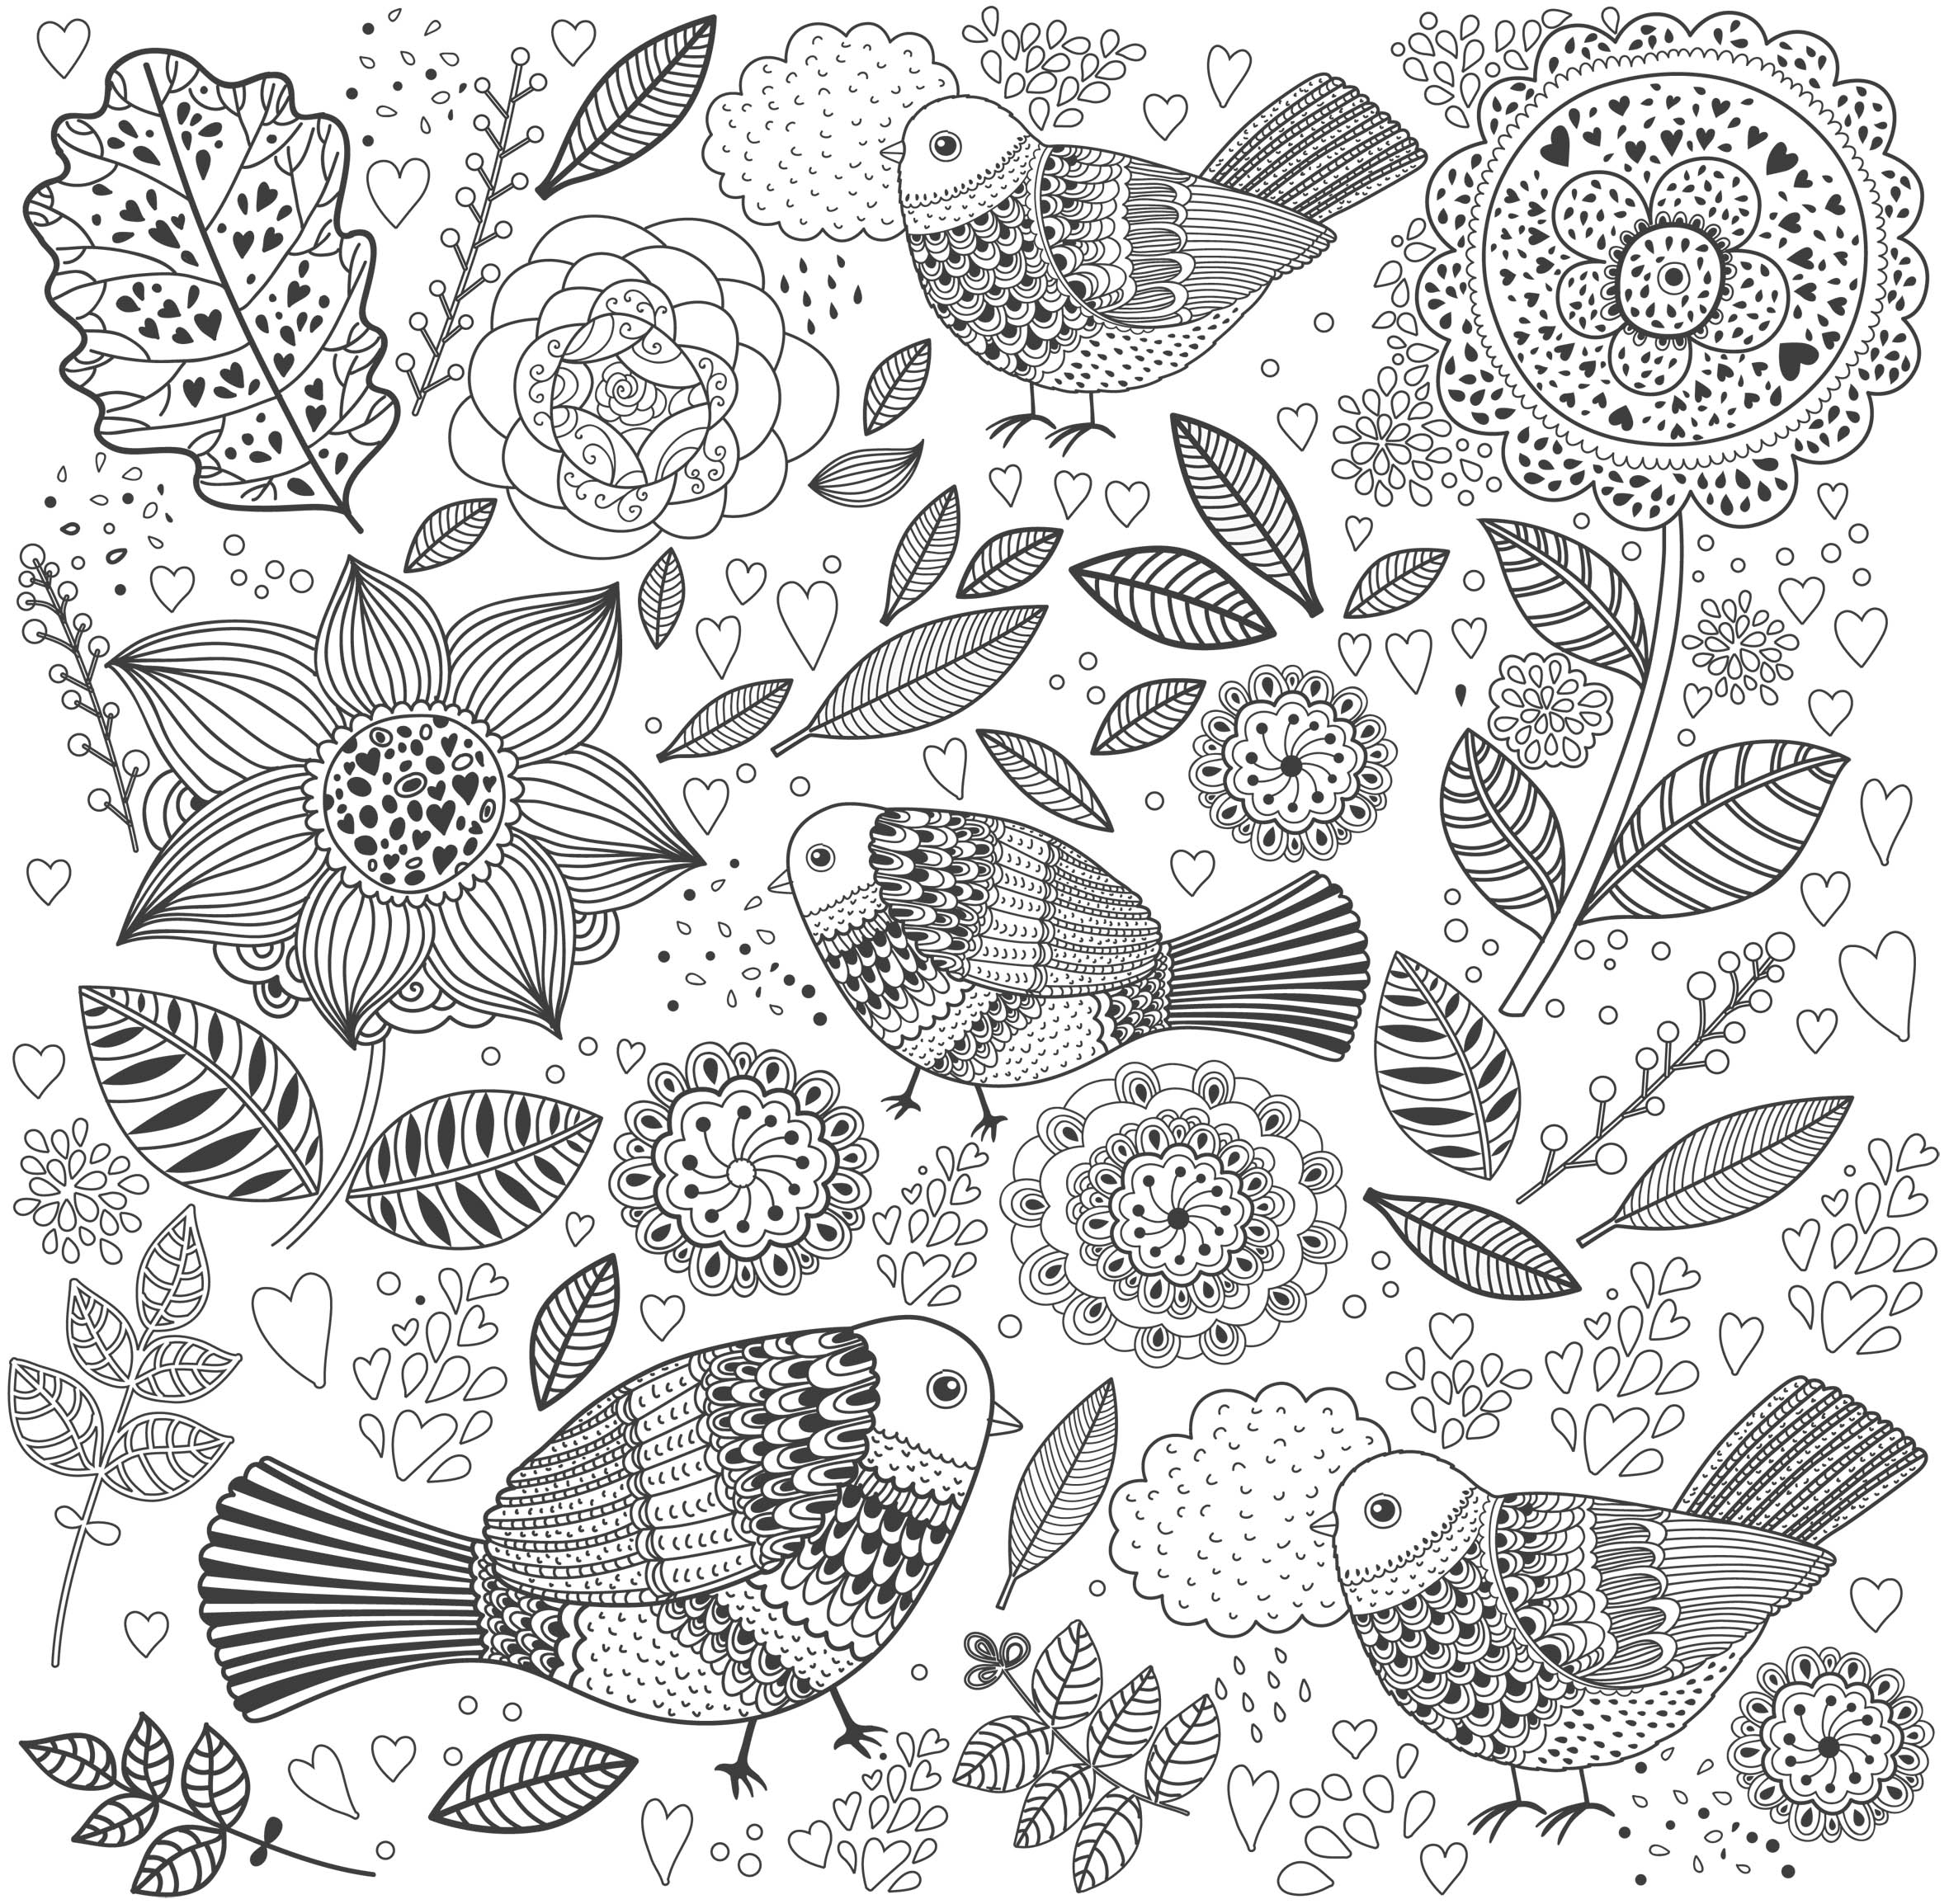 131 dessins de coloriage anti stress imprimer - Coloriage anti stress gratuit ...